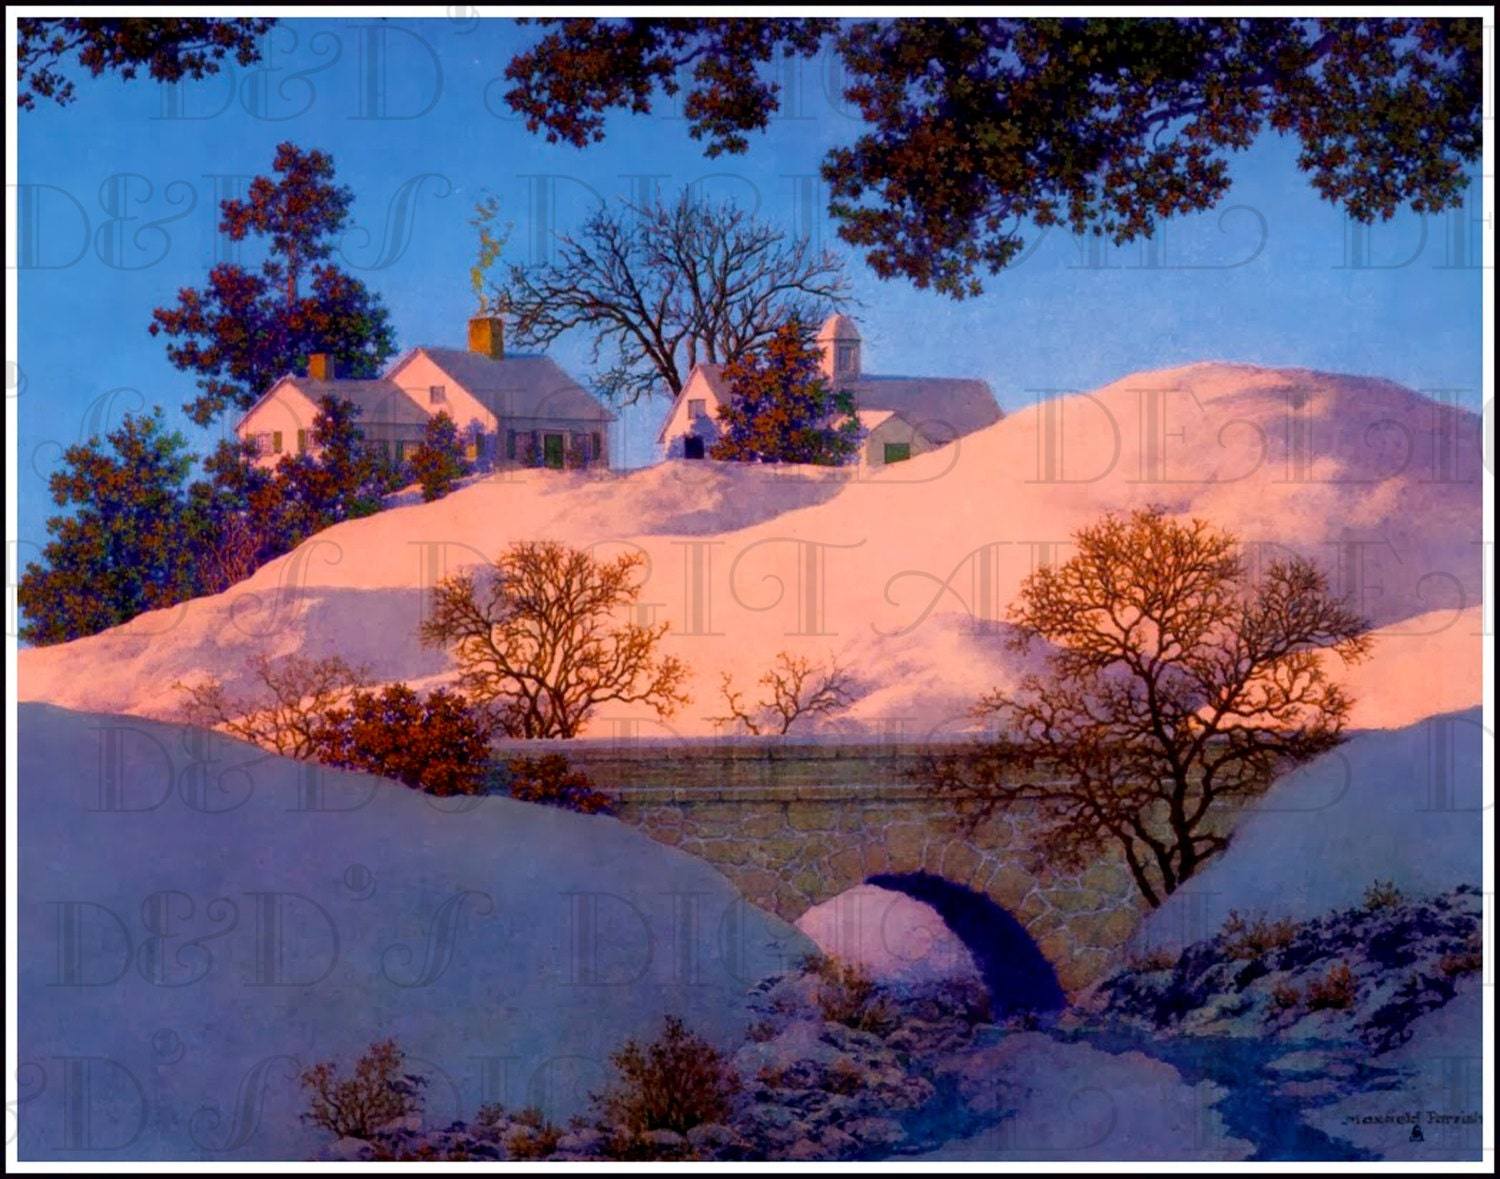 Maxfield parrish christmas snow covered landscape digital for Christmas landscape images